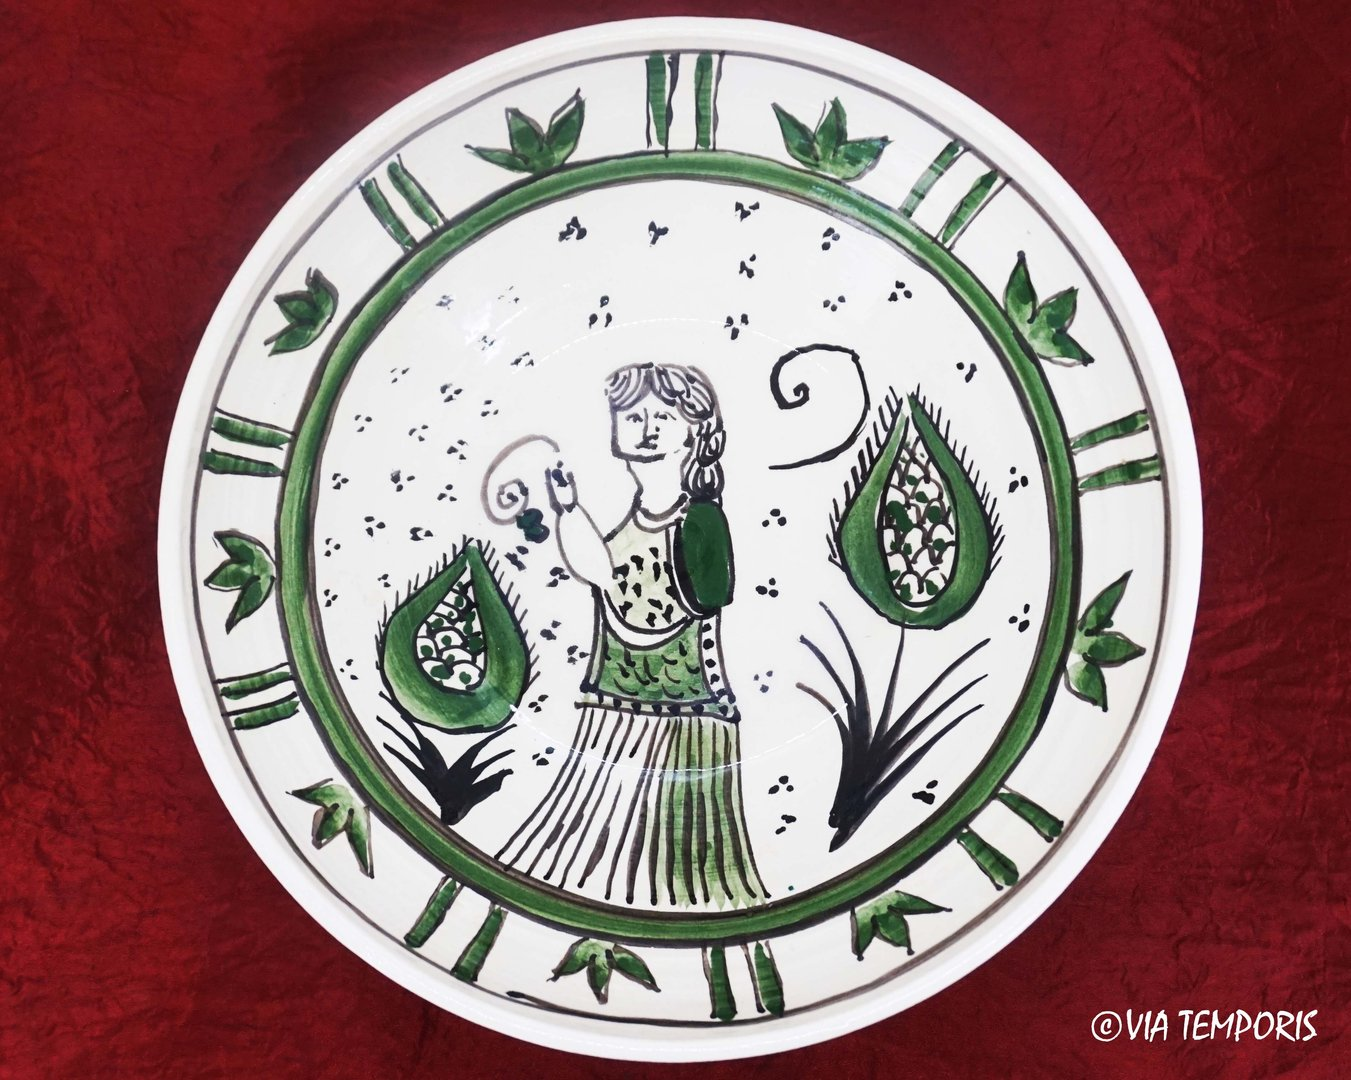 MEDIEVAL POTTERY - MAJOLICA PLATE WITH WOMAN DECOR